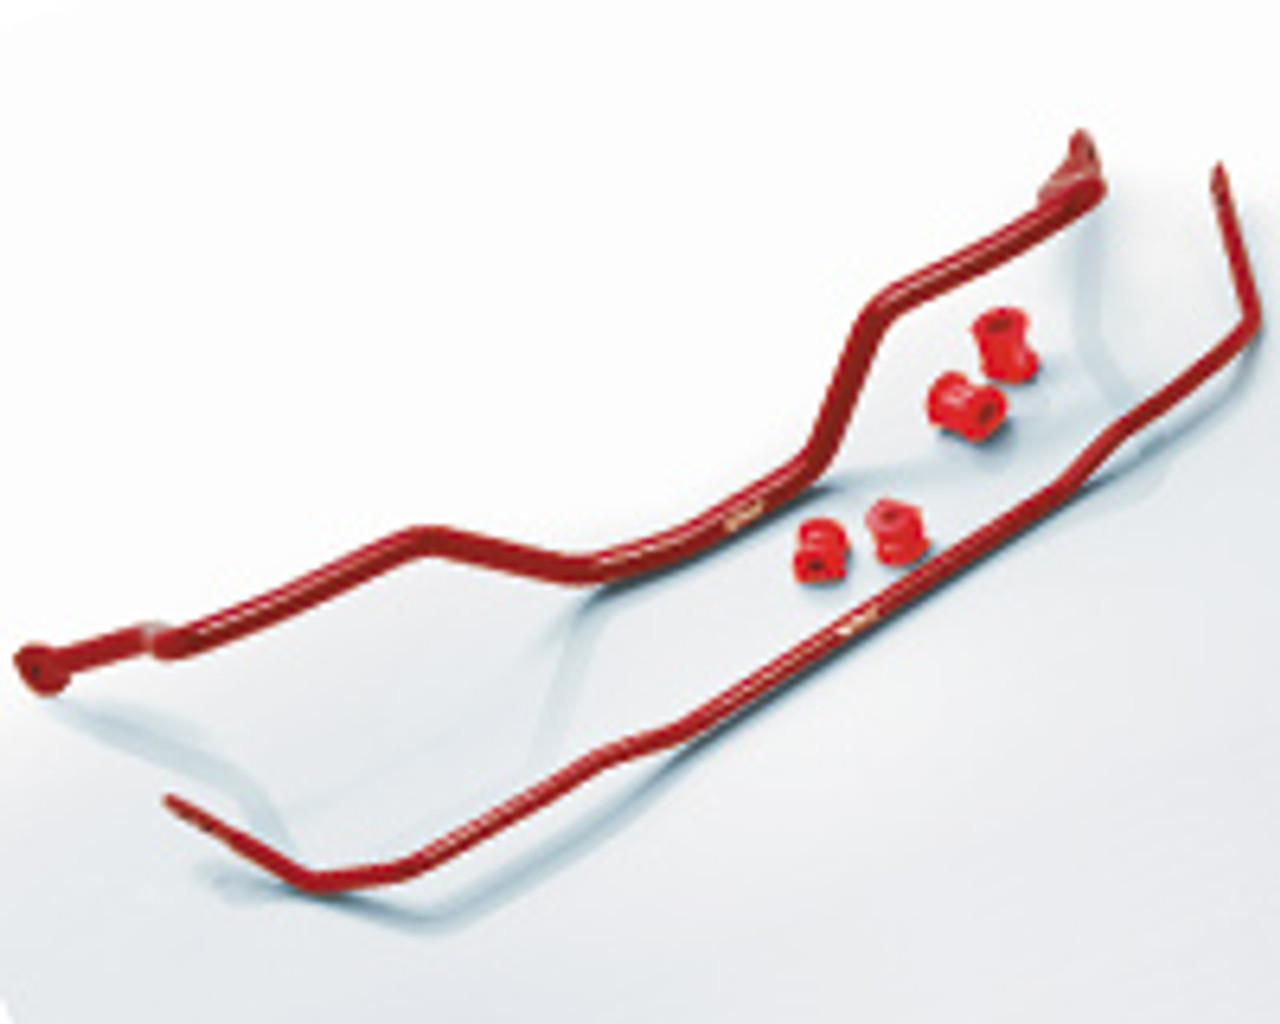 Eibach 29mm Front Anti-Roll Bar Kit for 09+ Hyundai Genesis Coupe